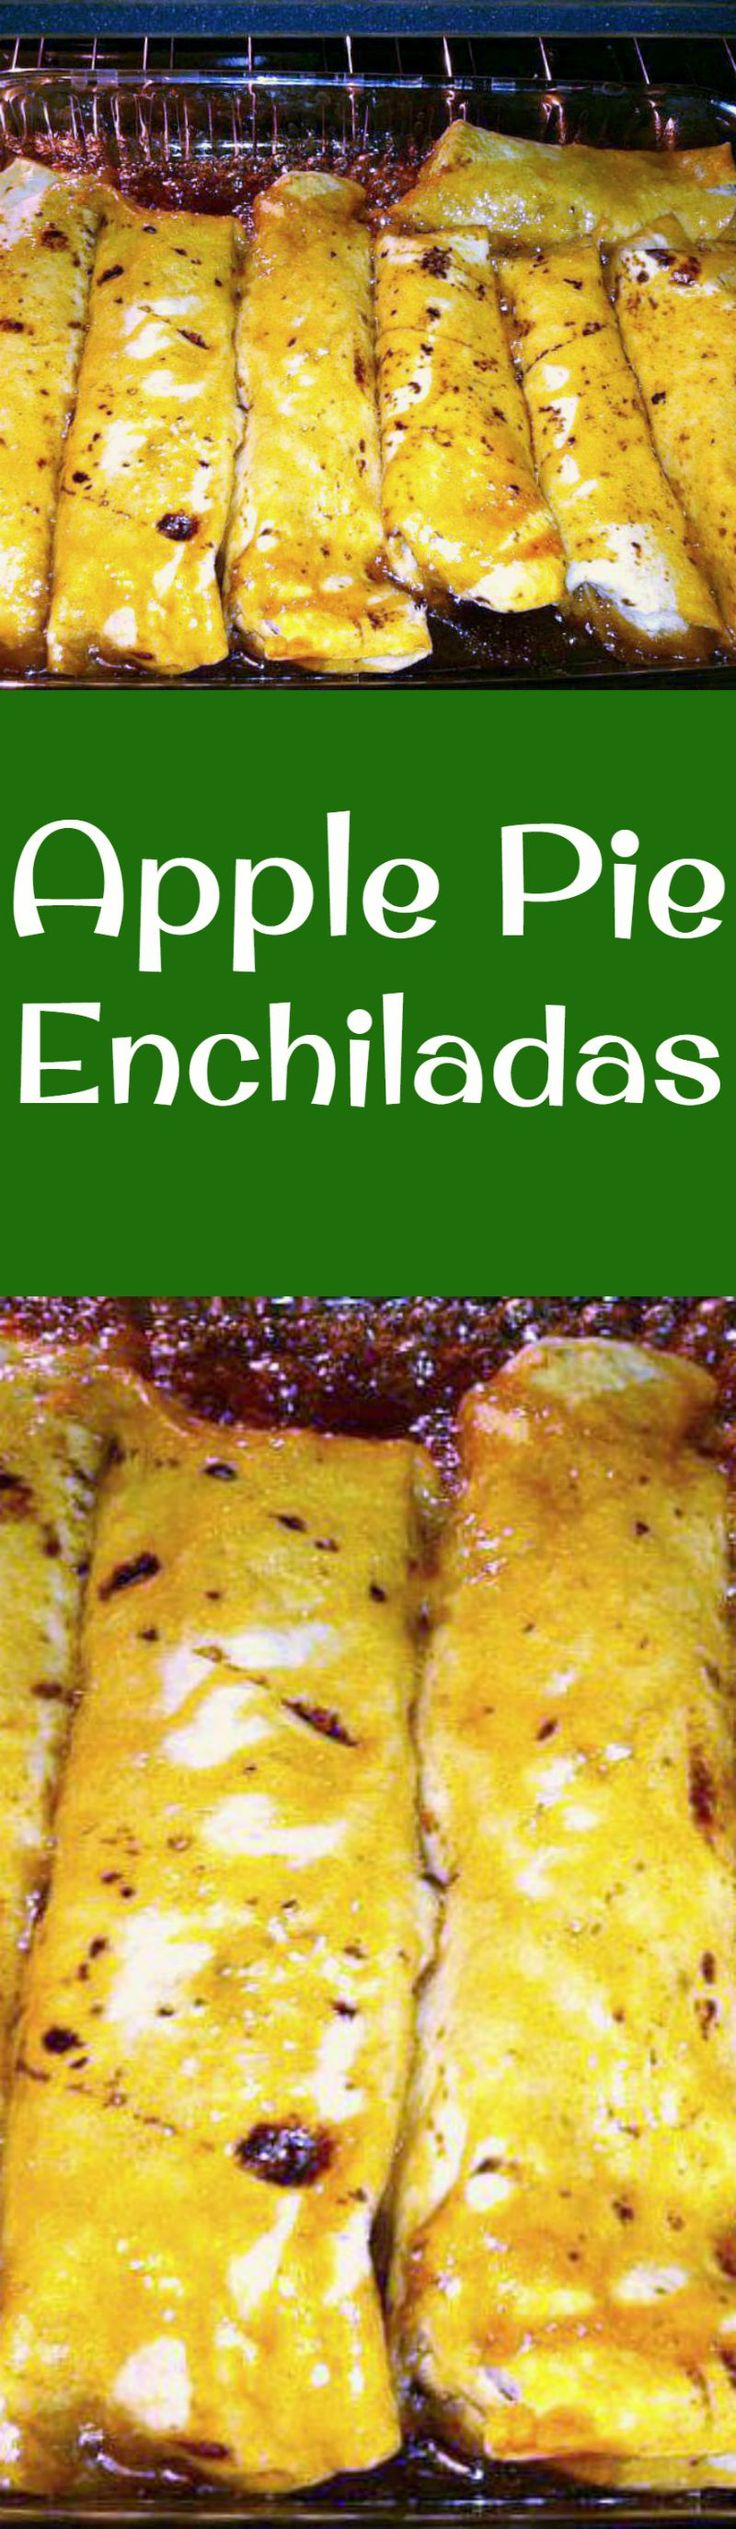 Apple Pie Enchiladas - You can also make these using other fillings, such as blueberries. Always great reviews of deliciousness and yumminess!